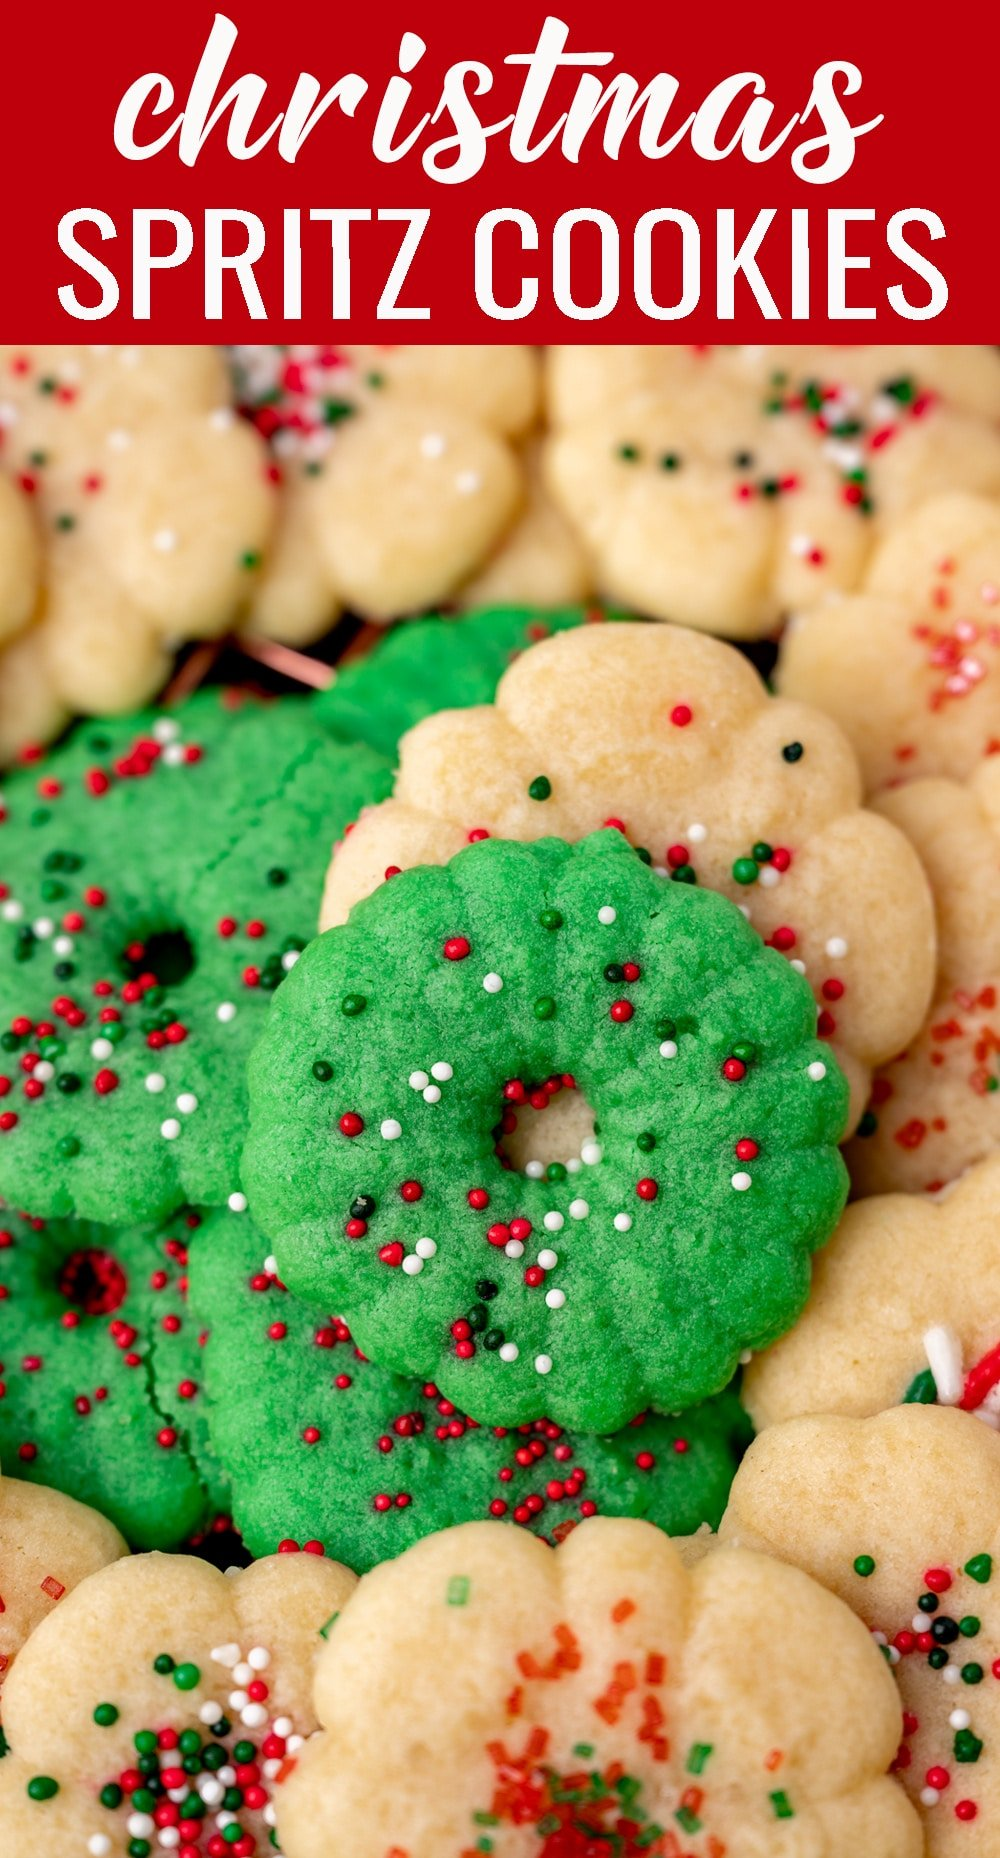 Nothing says the holidays like festive butter spritz cookies! Use a cookie press to make festive shapes for these buttery sugar cookies. via @tastesoflizzyt